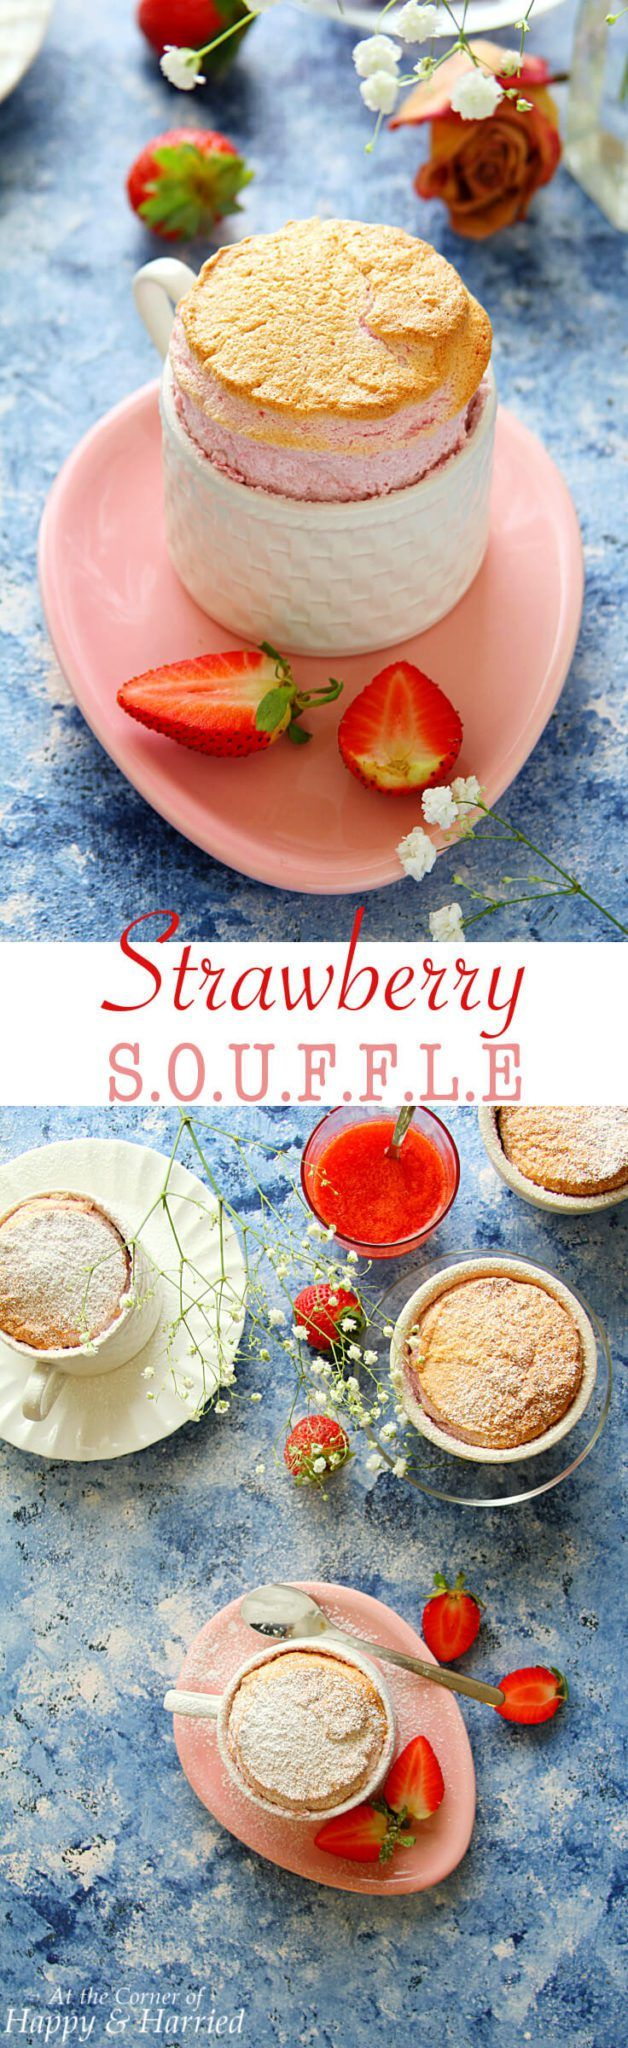 STRAWBERRY SOUFFLE - HAPPY&HARRIED